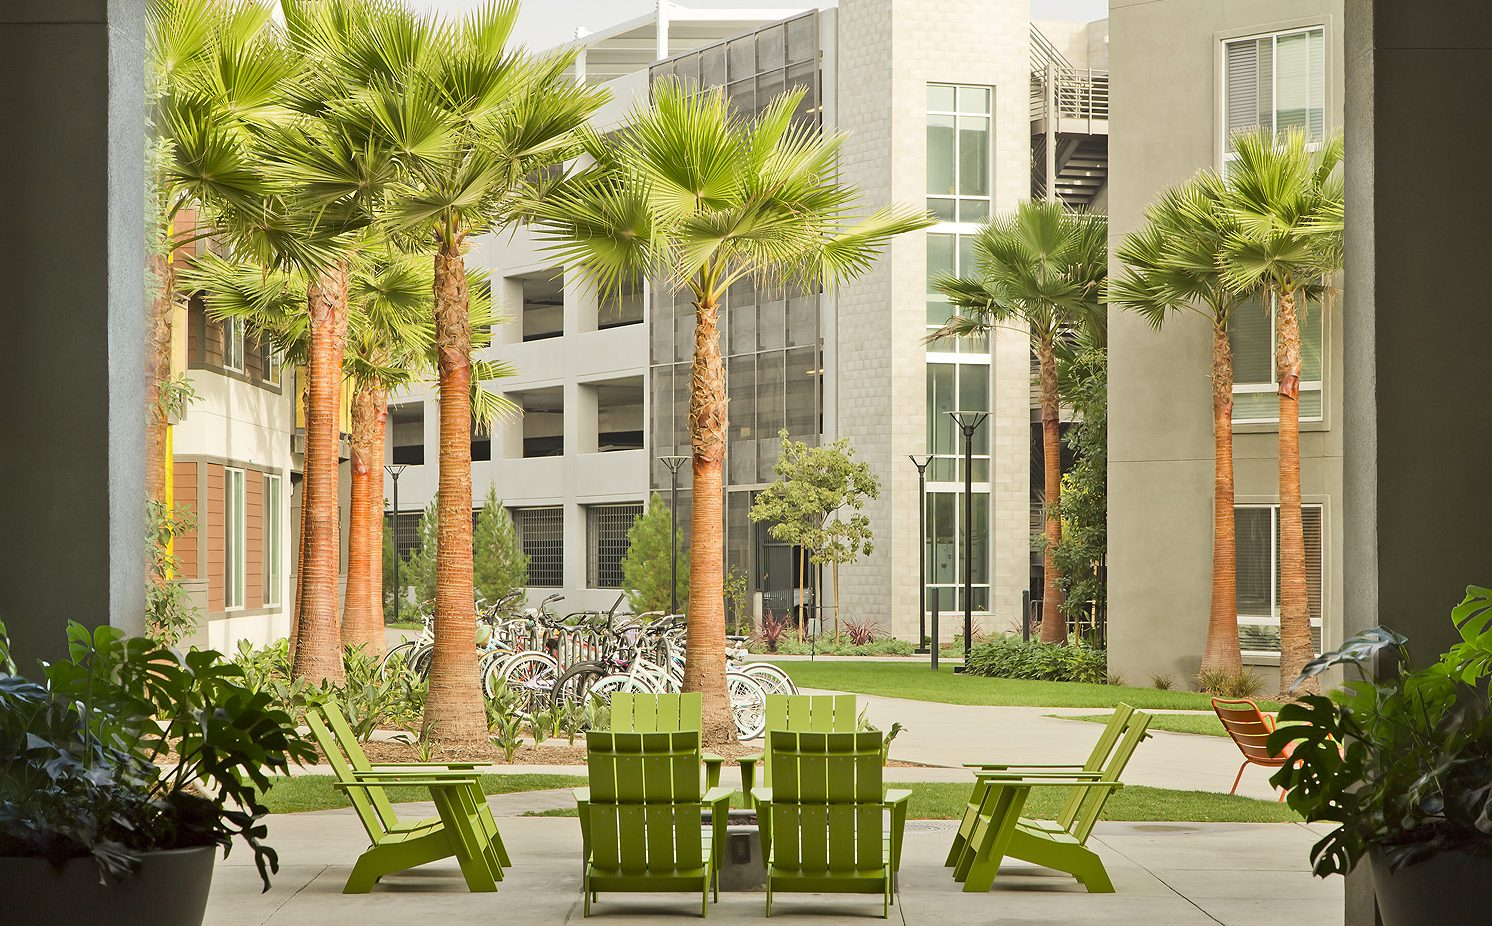 Exterior of apartment building courtyard with adirondack chairs, bikes in a bike rack and palm trees.